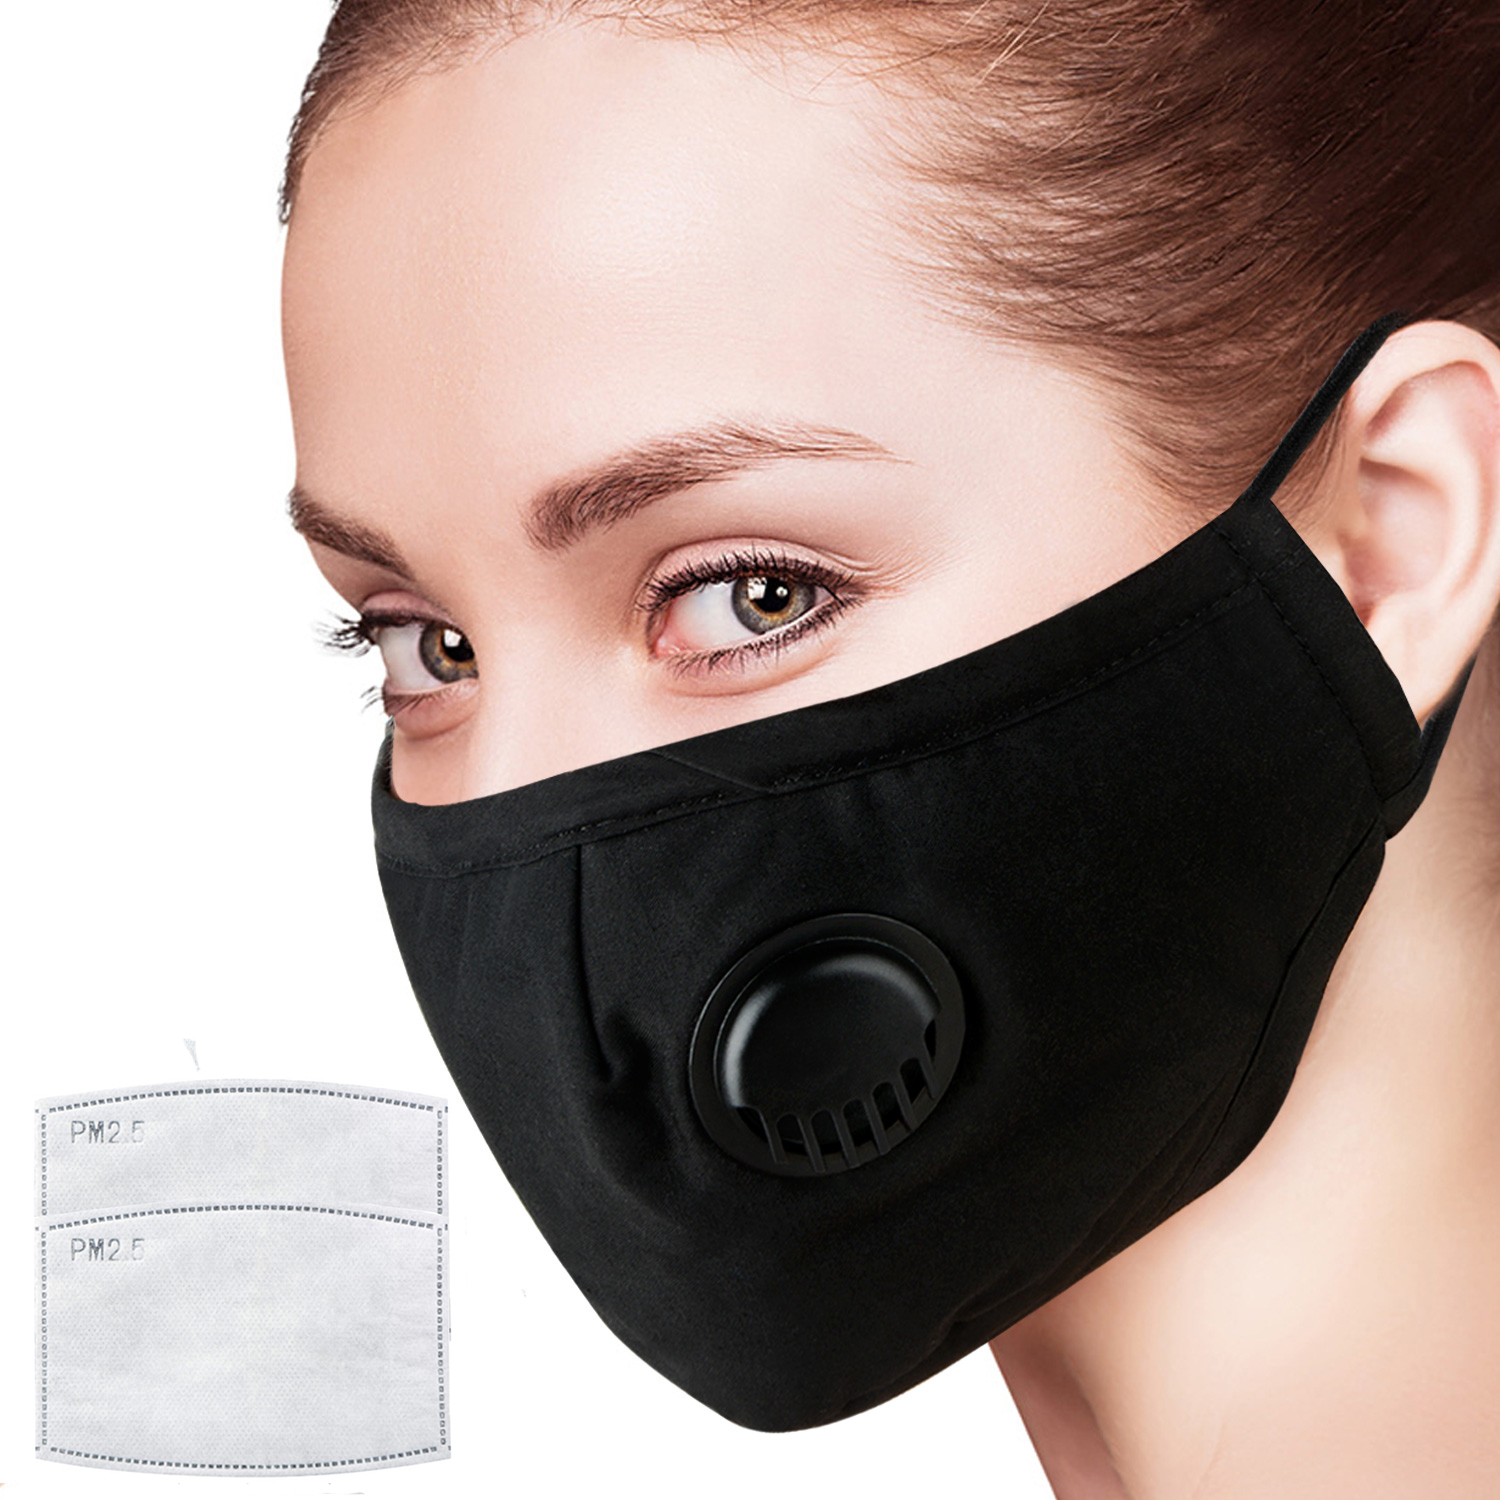 Masks Black Cotton Mouth Face Mask With 2 Activated Carbon Filter Windproof Mouth-muffle For Men Women Black Fashion Riding Mask